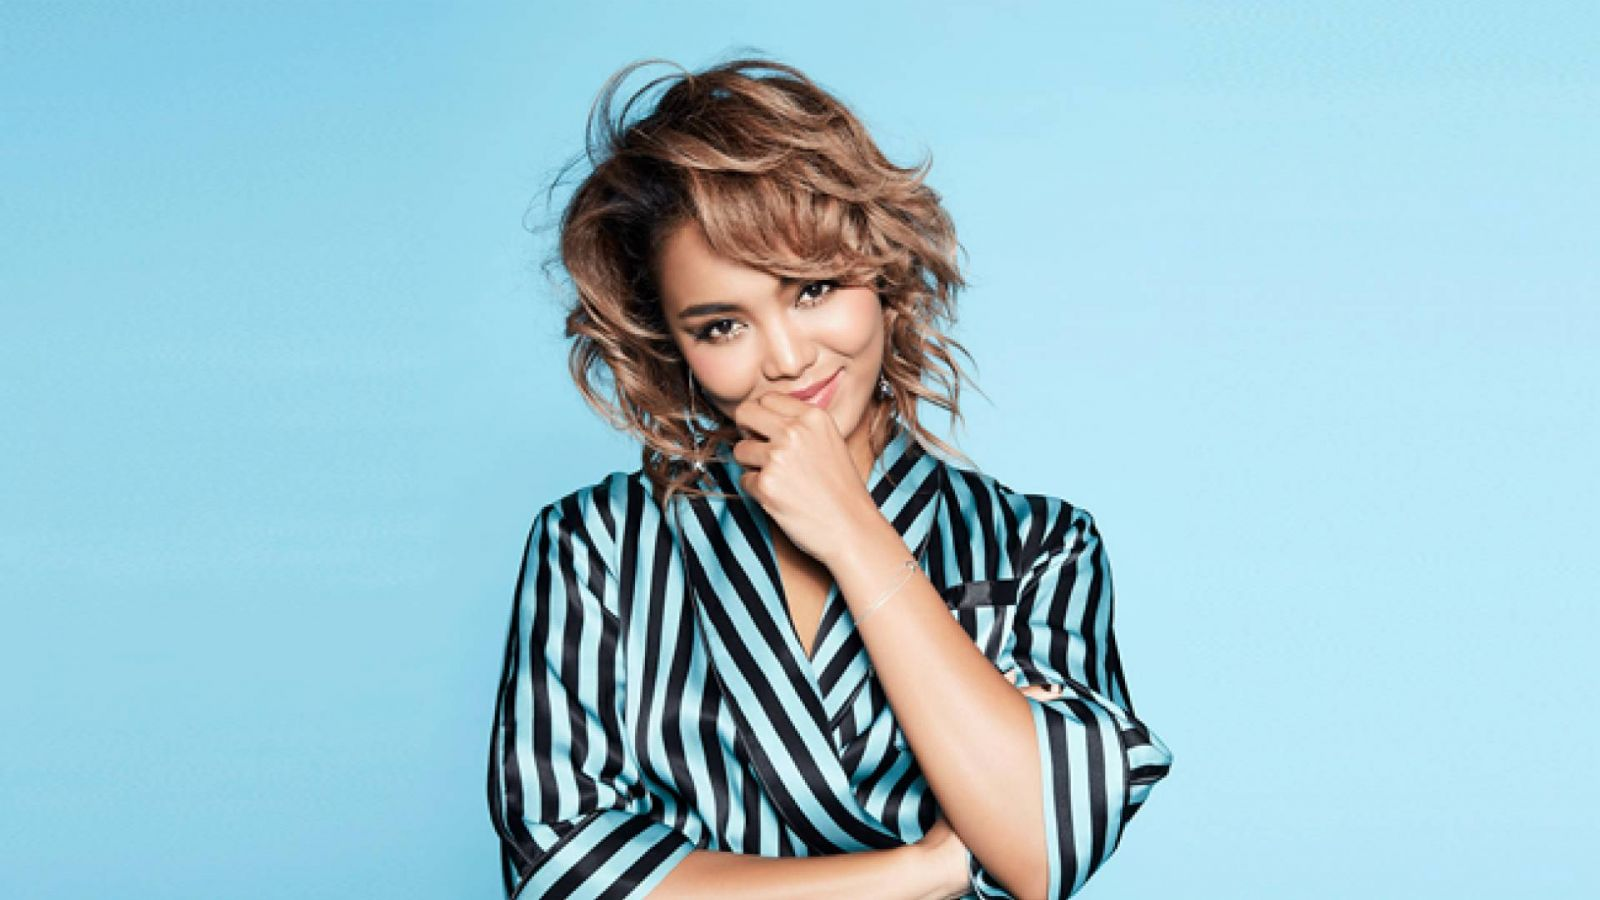 Crystal Kay © 2018 UNIVERSAL MUSIC LLC. All rights reserved.